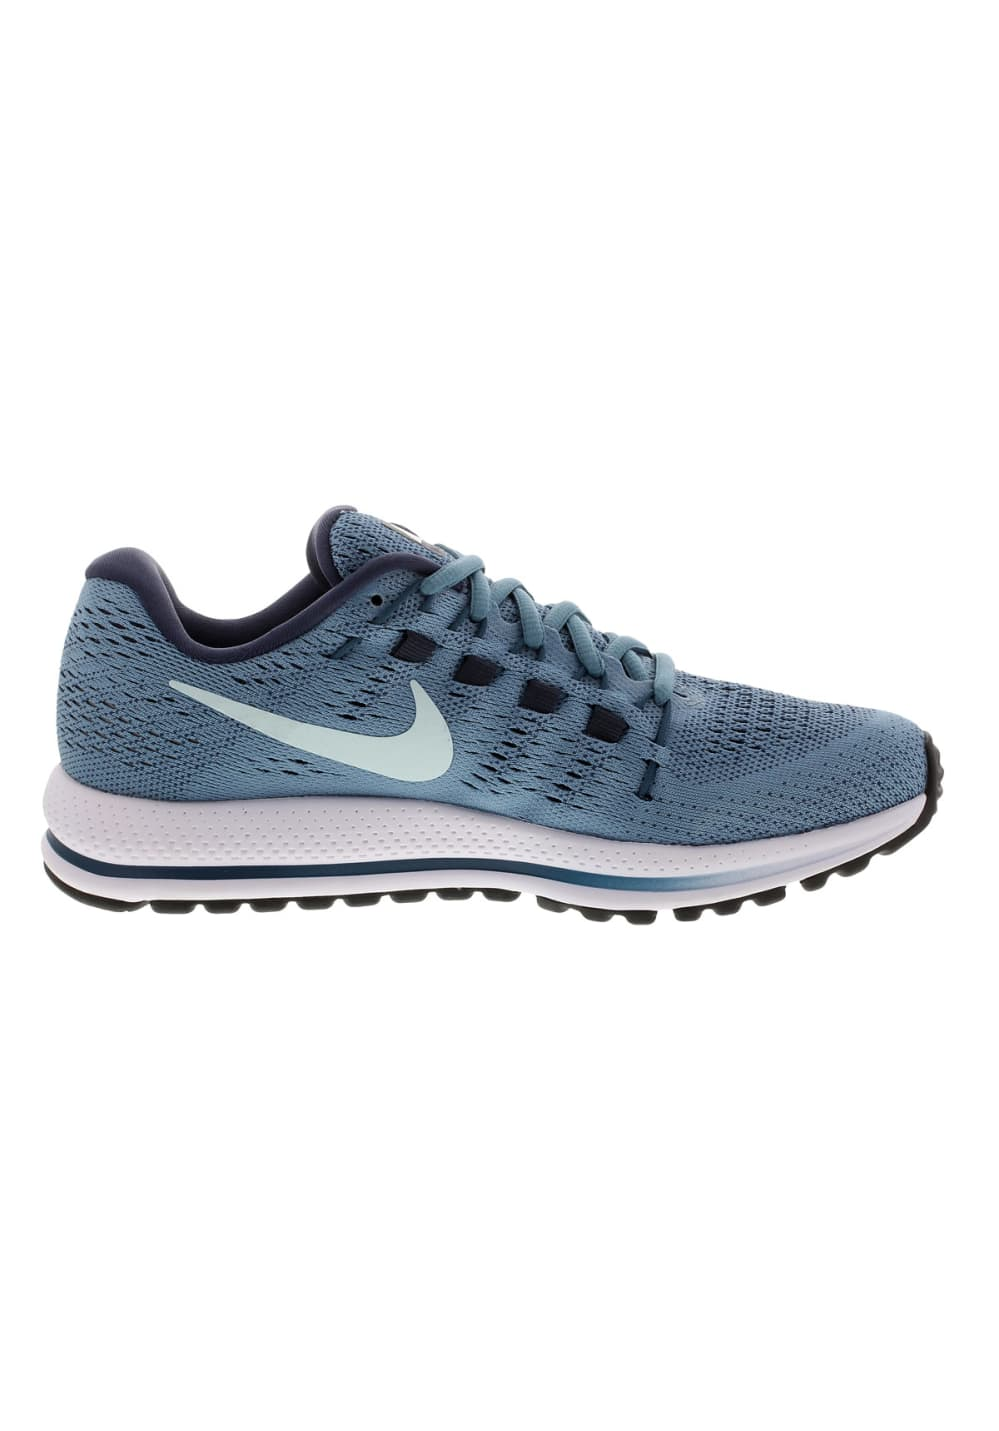 Nike Air Zoom Vomero 12 Chaussures running pour Femme Bleu